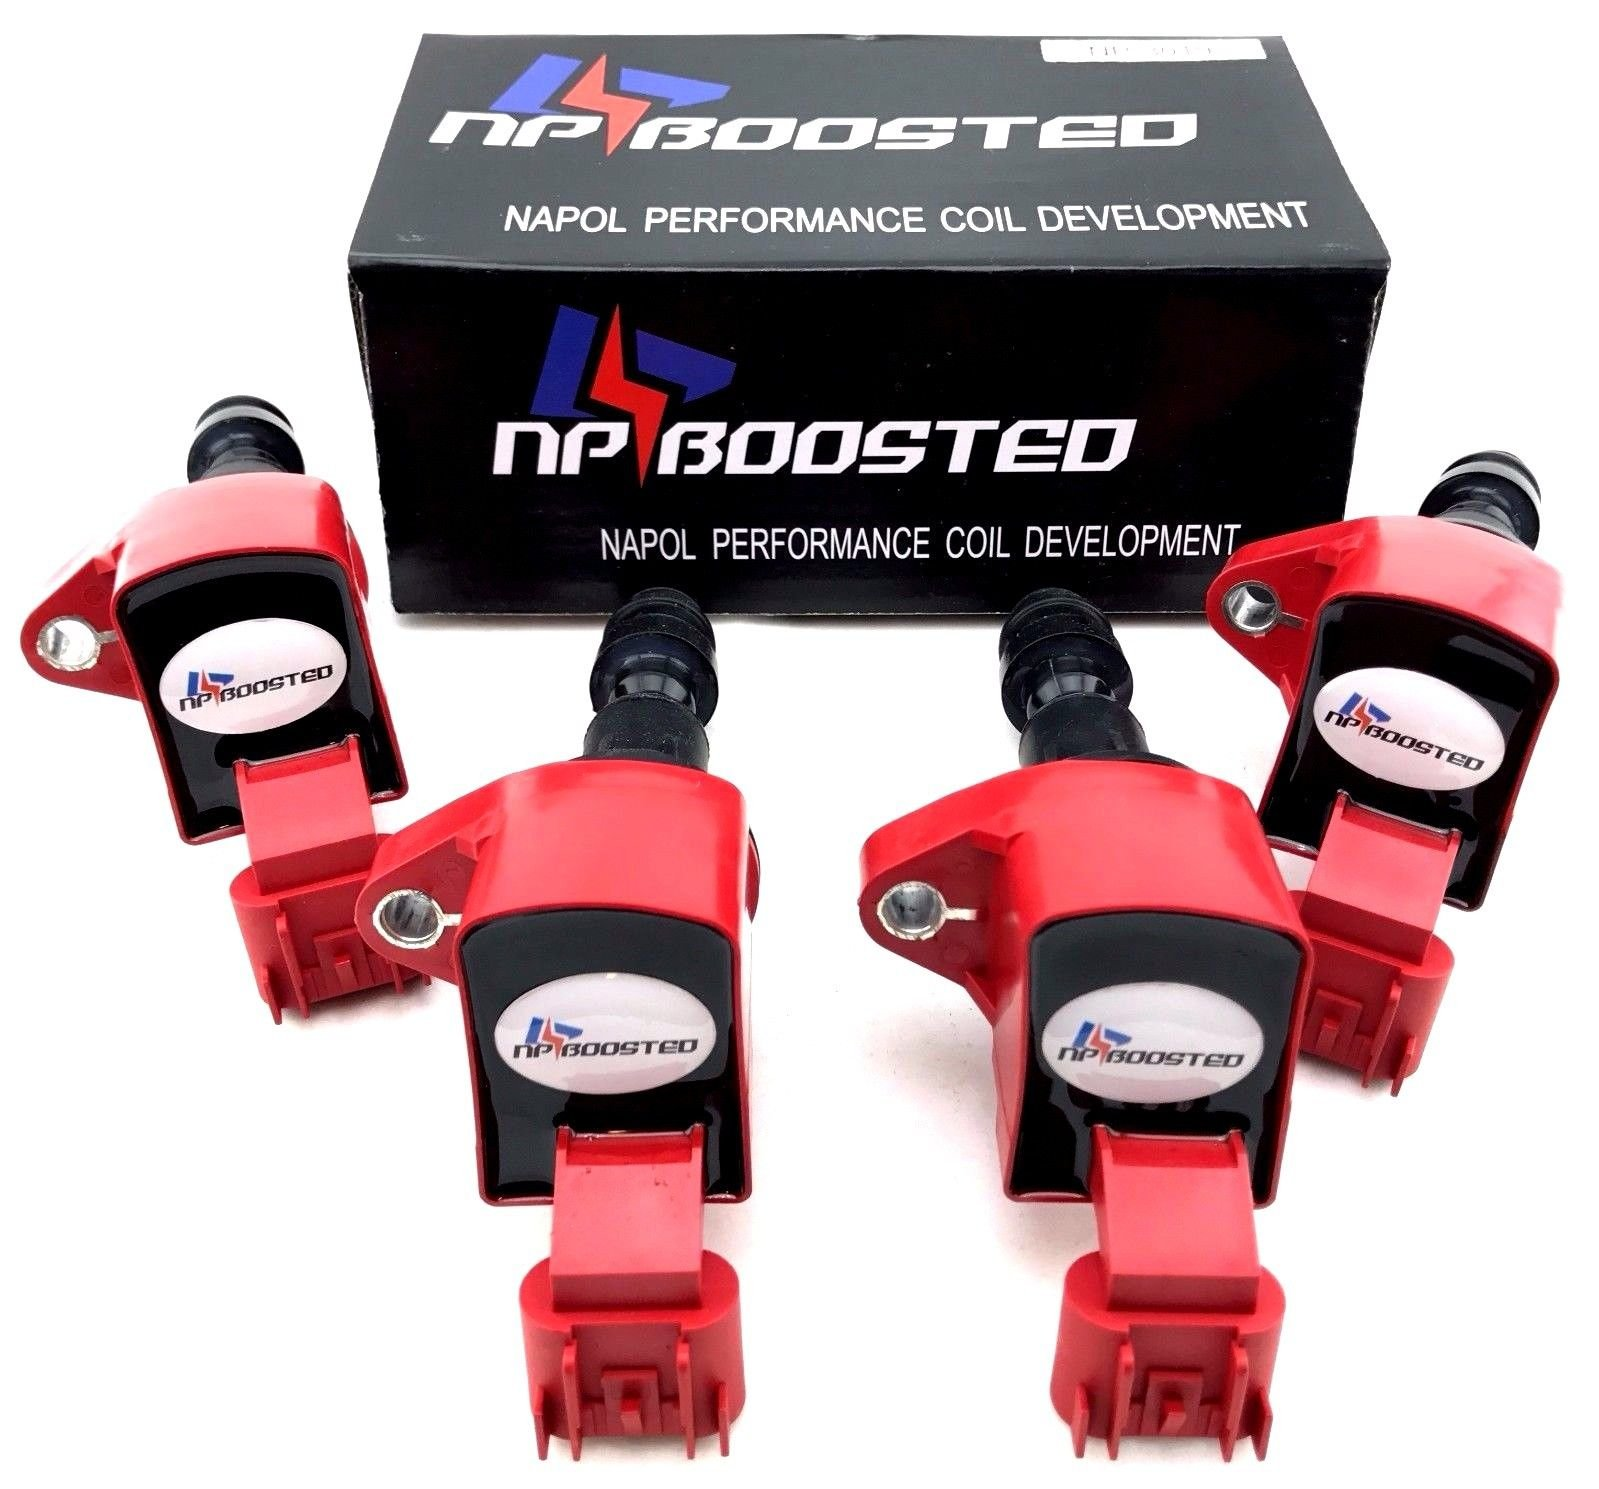 2007-2015 Ignition coil Packs Chevy Buick Saturn Pontiac G4 2.0L Turbo 2.2L 2.4L by NpBoosted